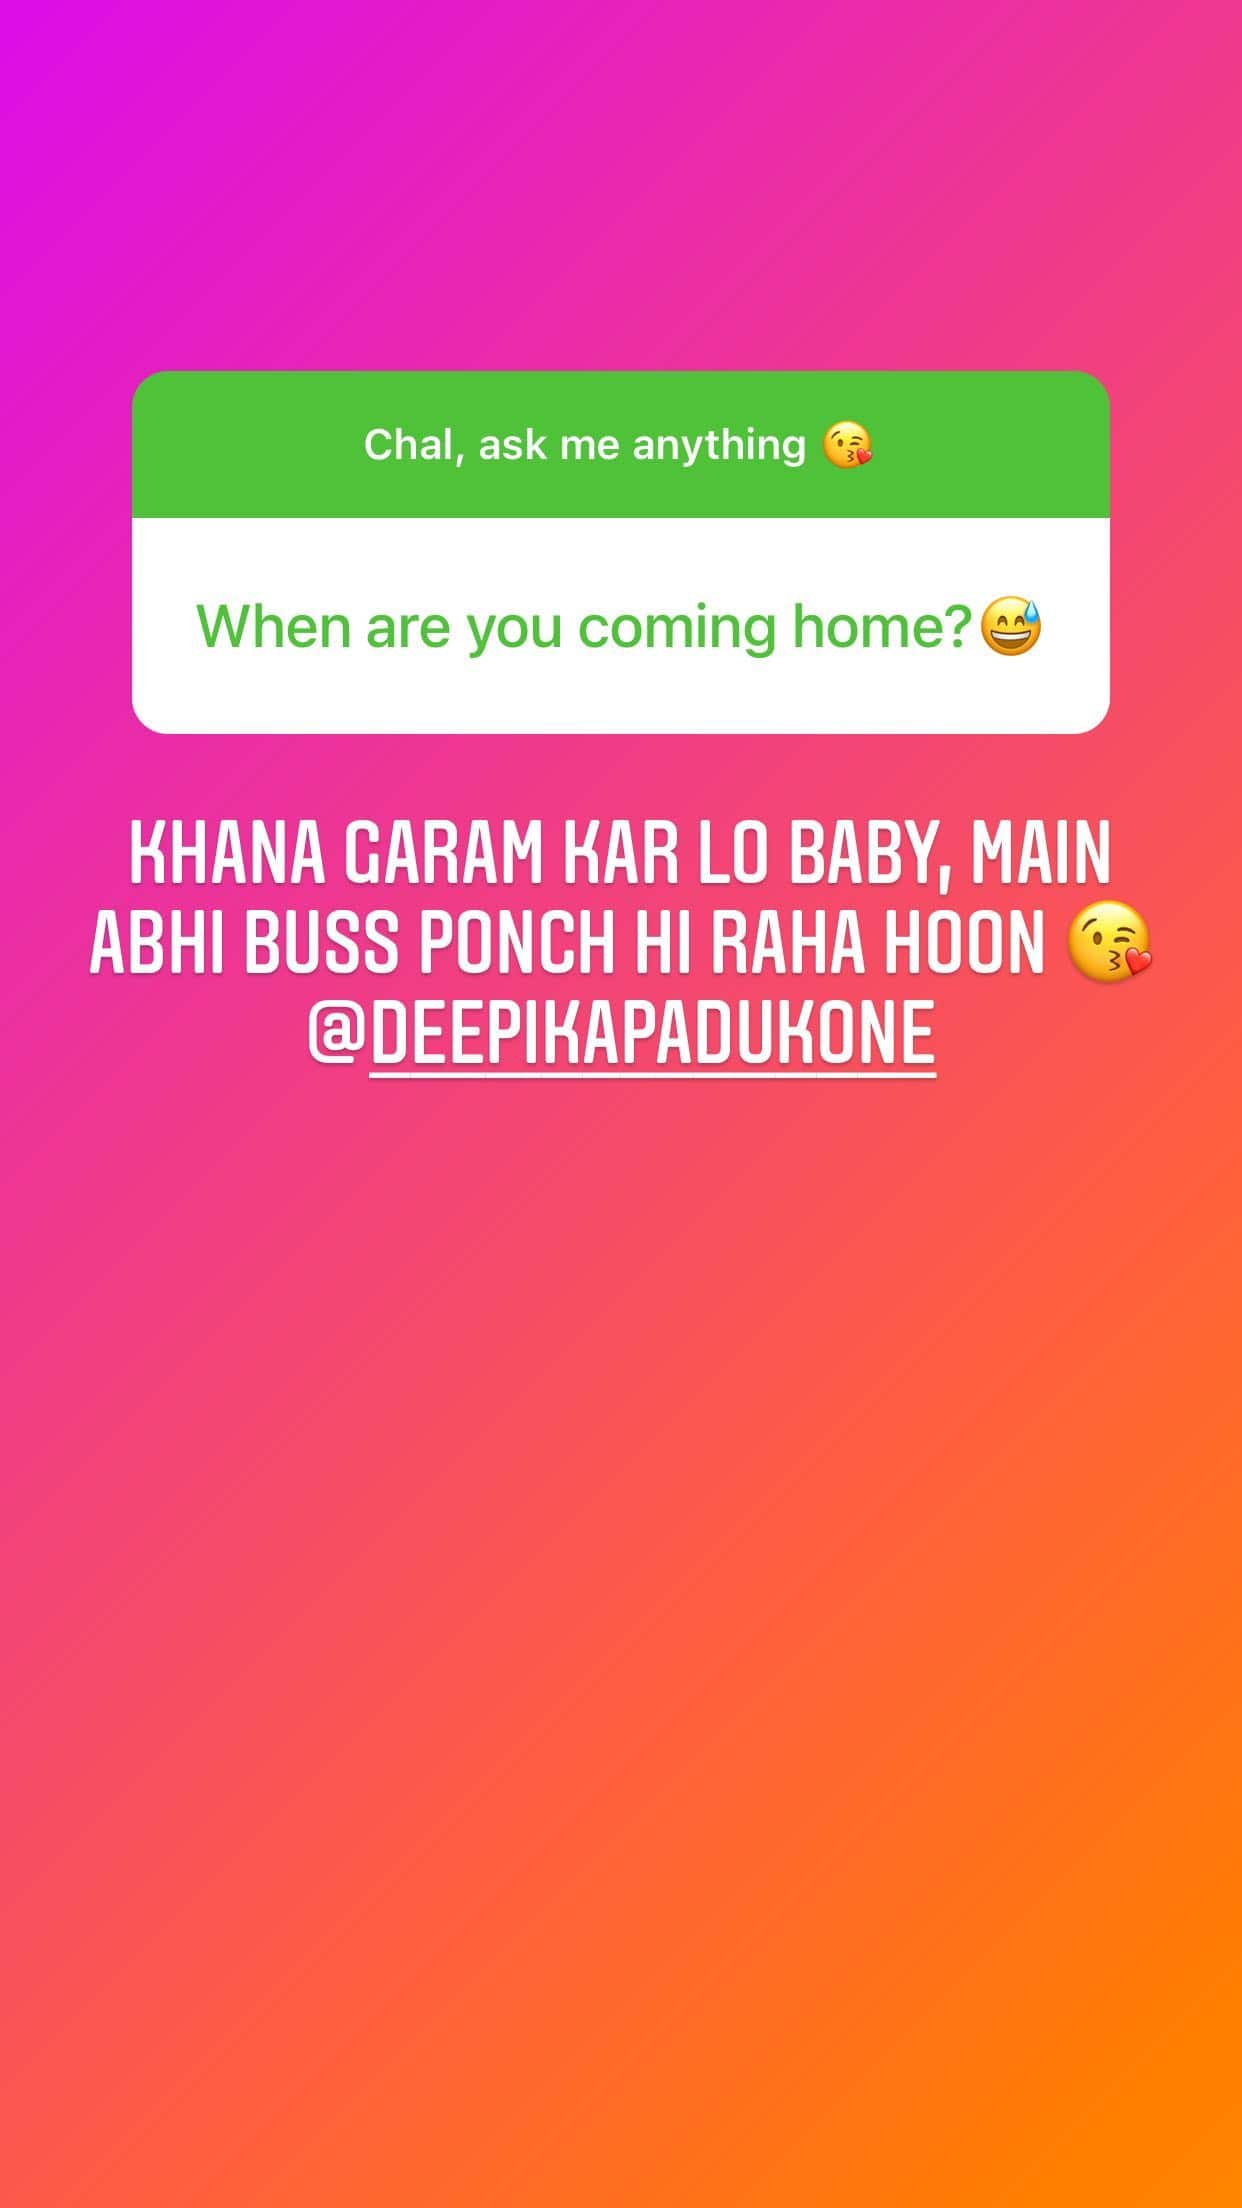 """Deepika wants to know when Ranveer will get home as he holds a &squot;Ask Me Anything&squot; session: """"Khana garam kar lo baby..."""""""